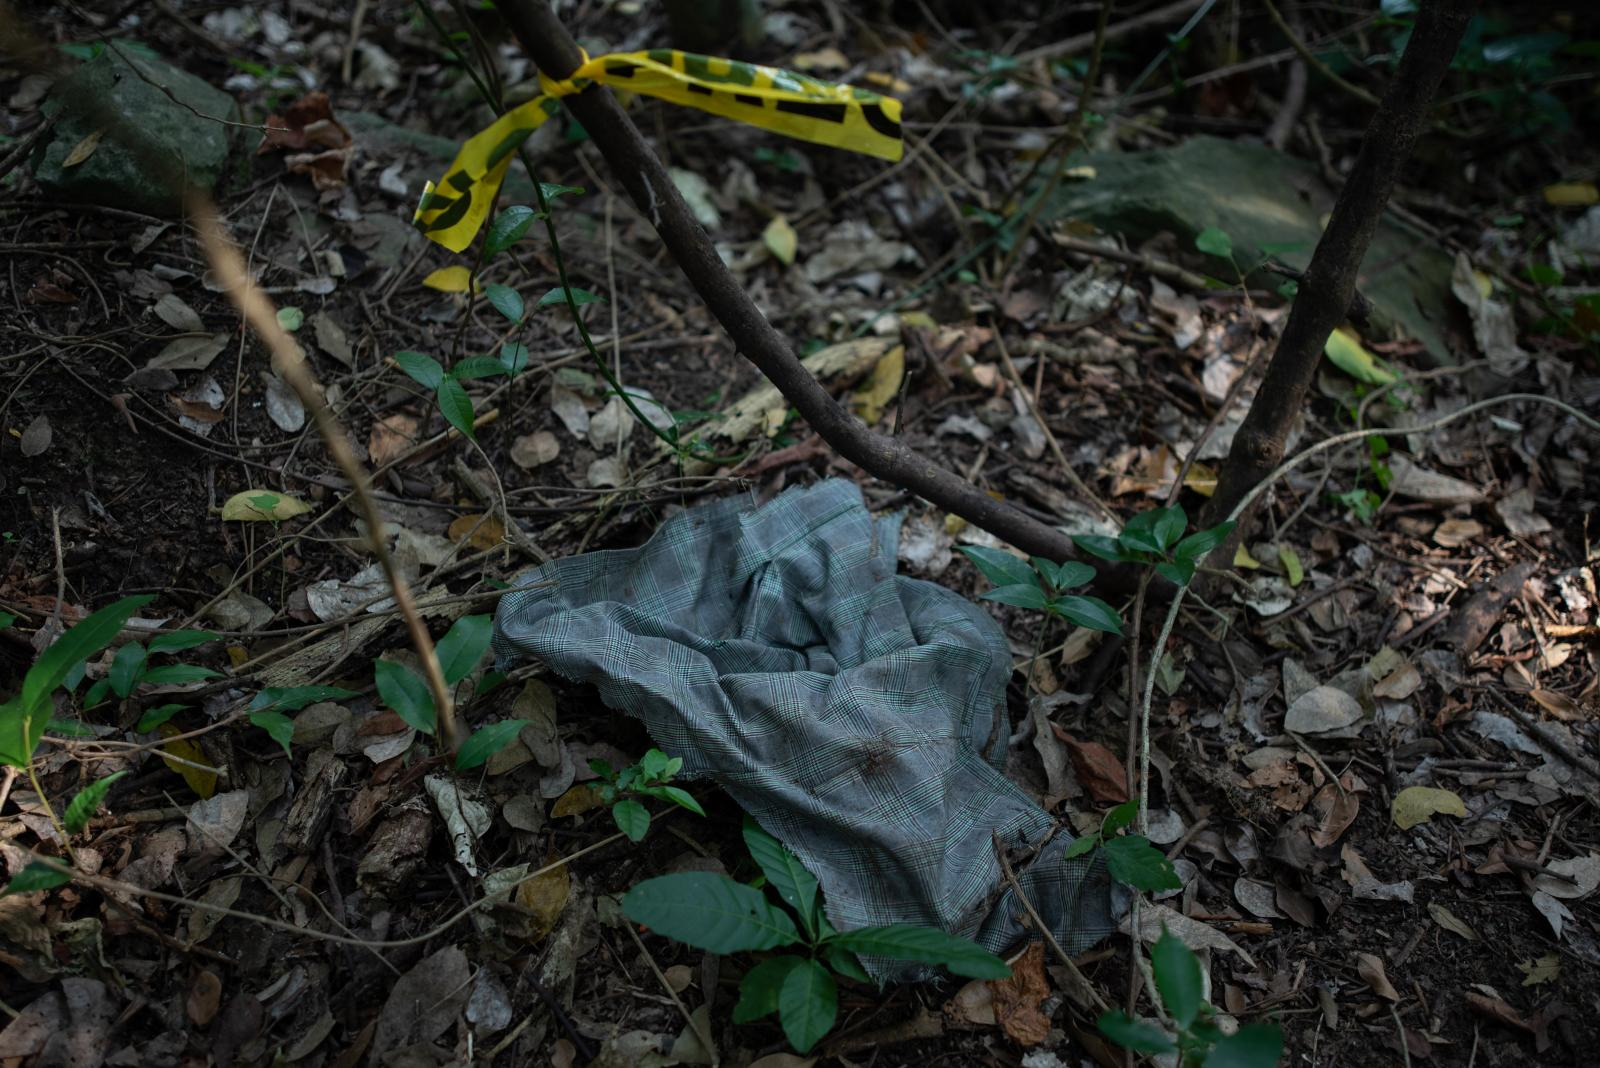 Women's skirt is located in an area that is investigated by police authorities and groups of relatives participating in the fifth National Missing Persons Search Brigade in Tihuatlan, Veracruz, Mexico, on February 20, 2020. Victoria Razo for NPR